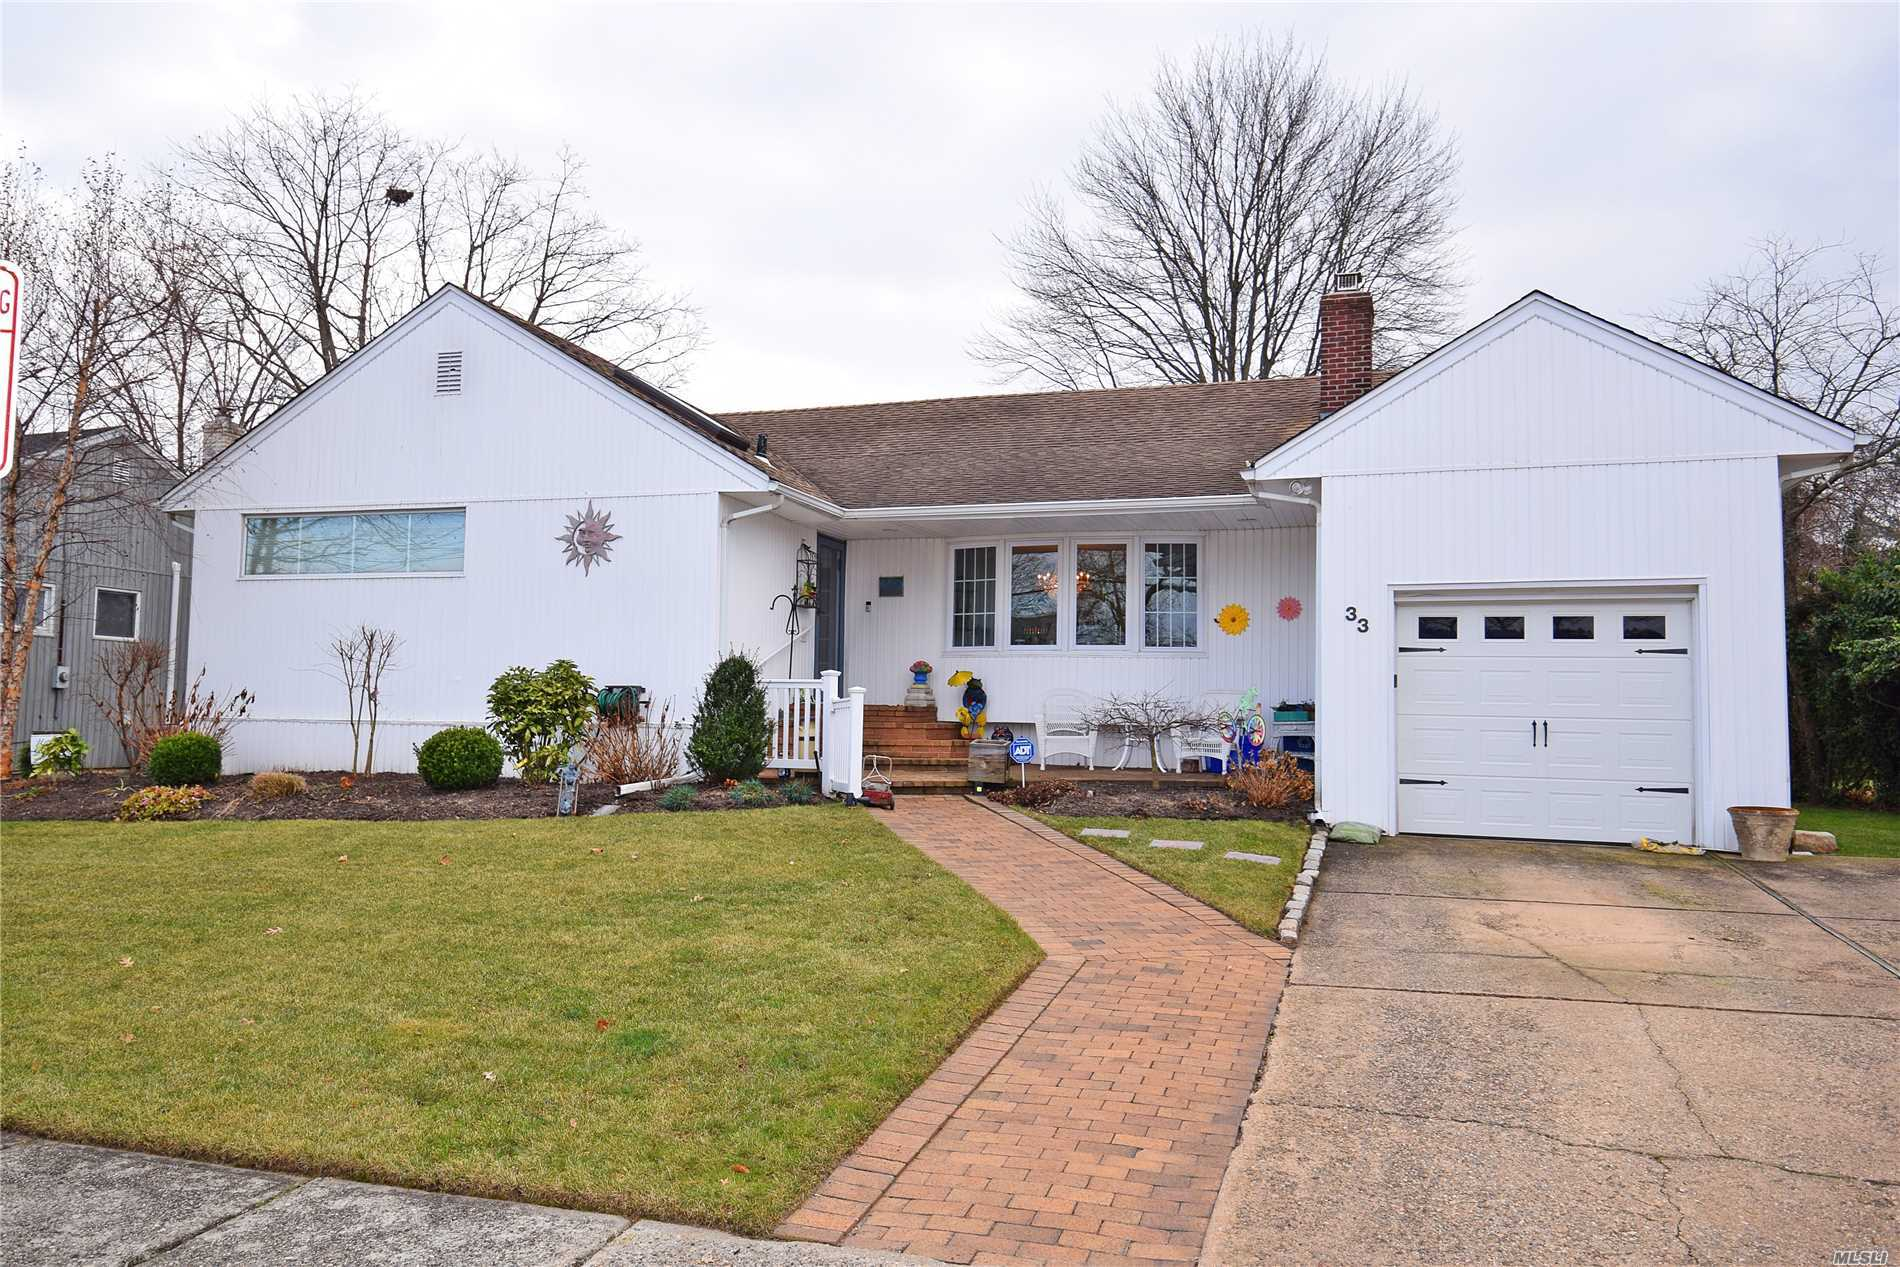 Beautiful Exp Ranch On A Quiet Street In Lynbrook.( Waverly Elementay School). Up Dated Kitchen With New Appliances, Granite Counter Top. Large Den Ideal For Entertaining. Dining Rm With Fpl, Living Rm .3 New Baths, Master With Radian Heat, Solar System. Star Saving $3, 114.Easy Show. Must See!!!